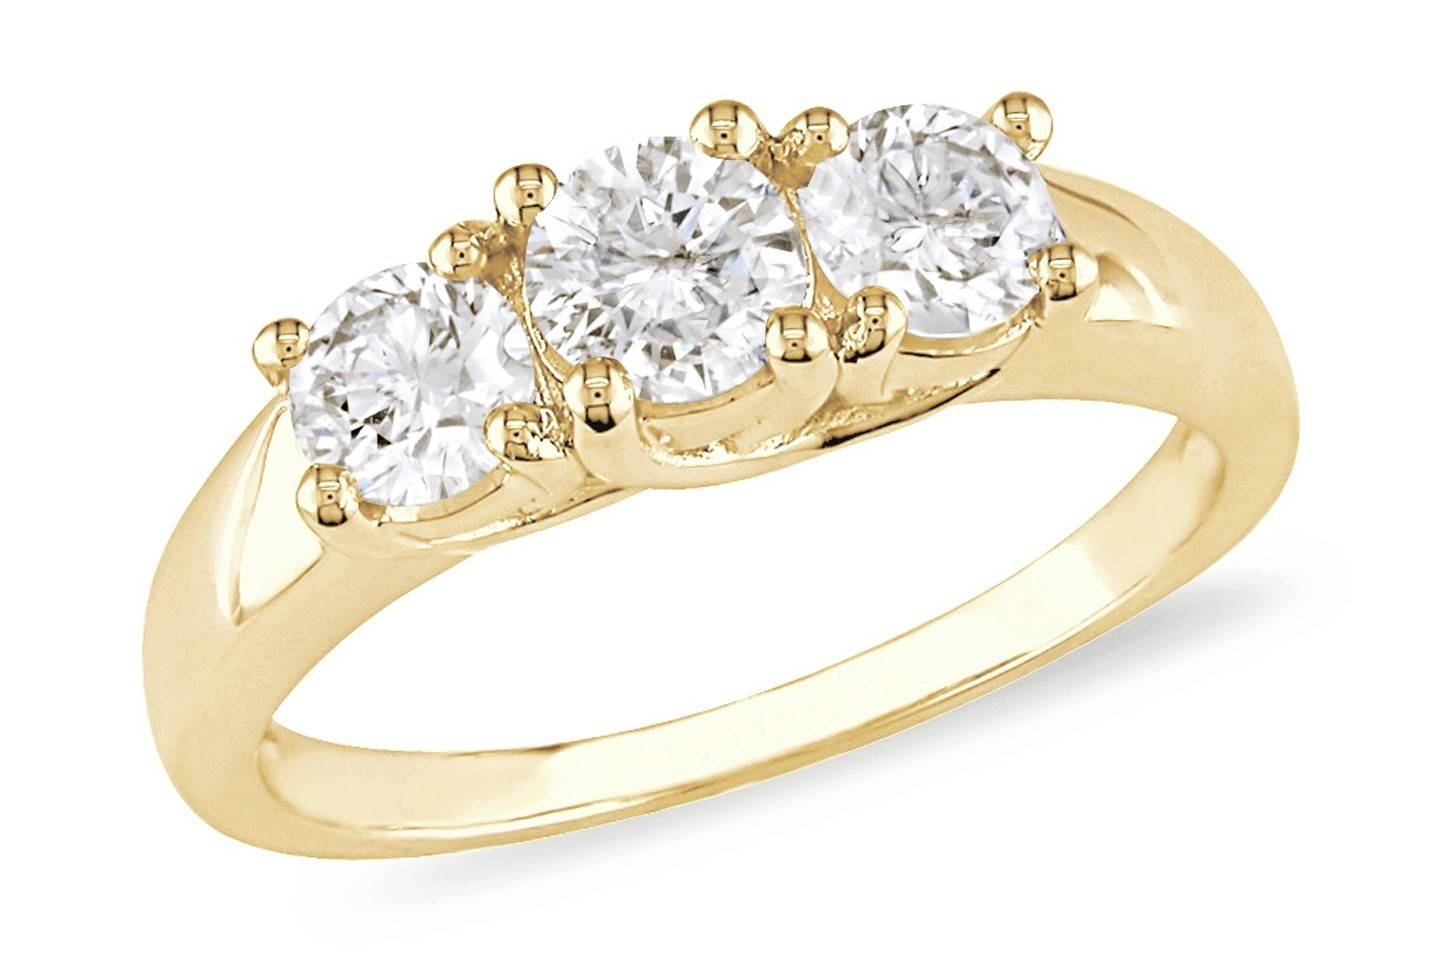 31 Best Lovely Gold Anniversary Rings | Eternity Jewelry Within Recent Yellow Gold Anniversary Rings (View 4 of 25)